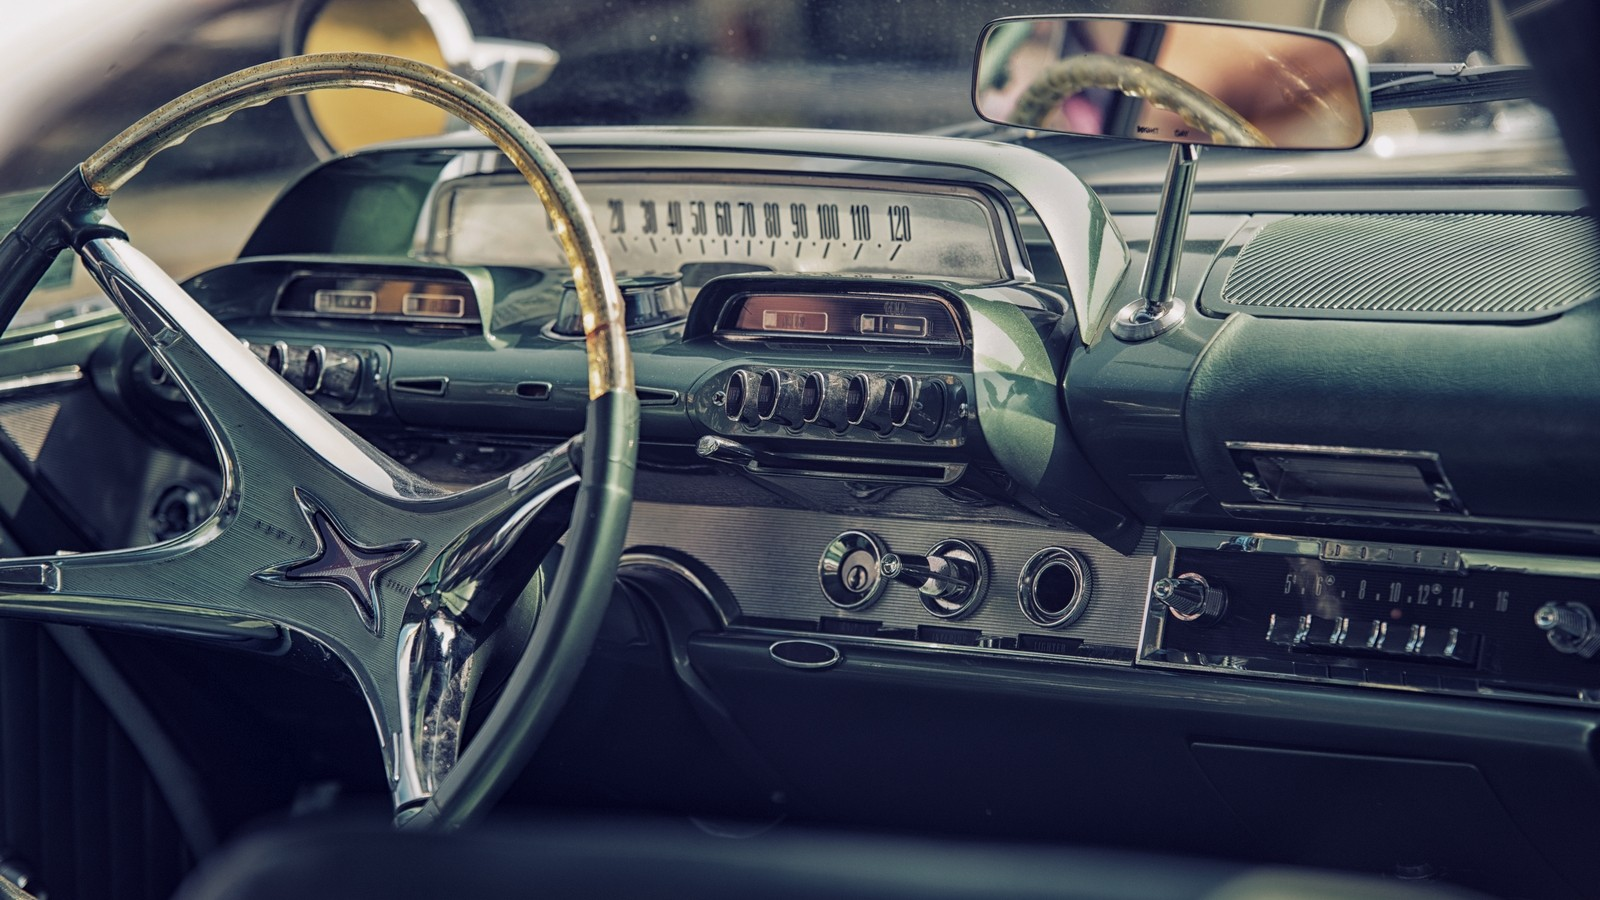 Sleza, Poland, August 15, 2015: Close up on old vintage car steering wheel and cockpit on Motorclassic show on August 15, 2015 in the Poland